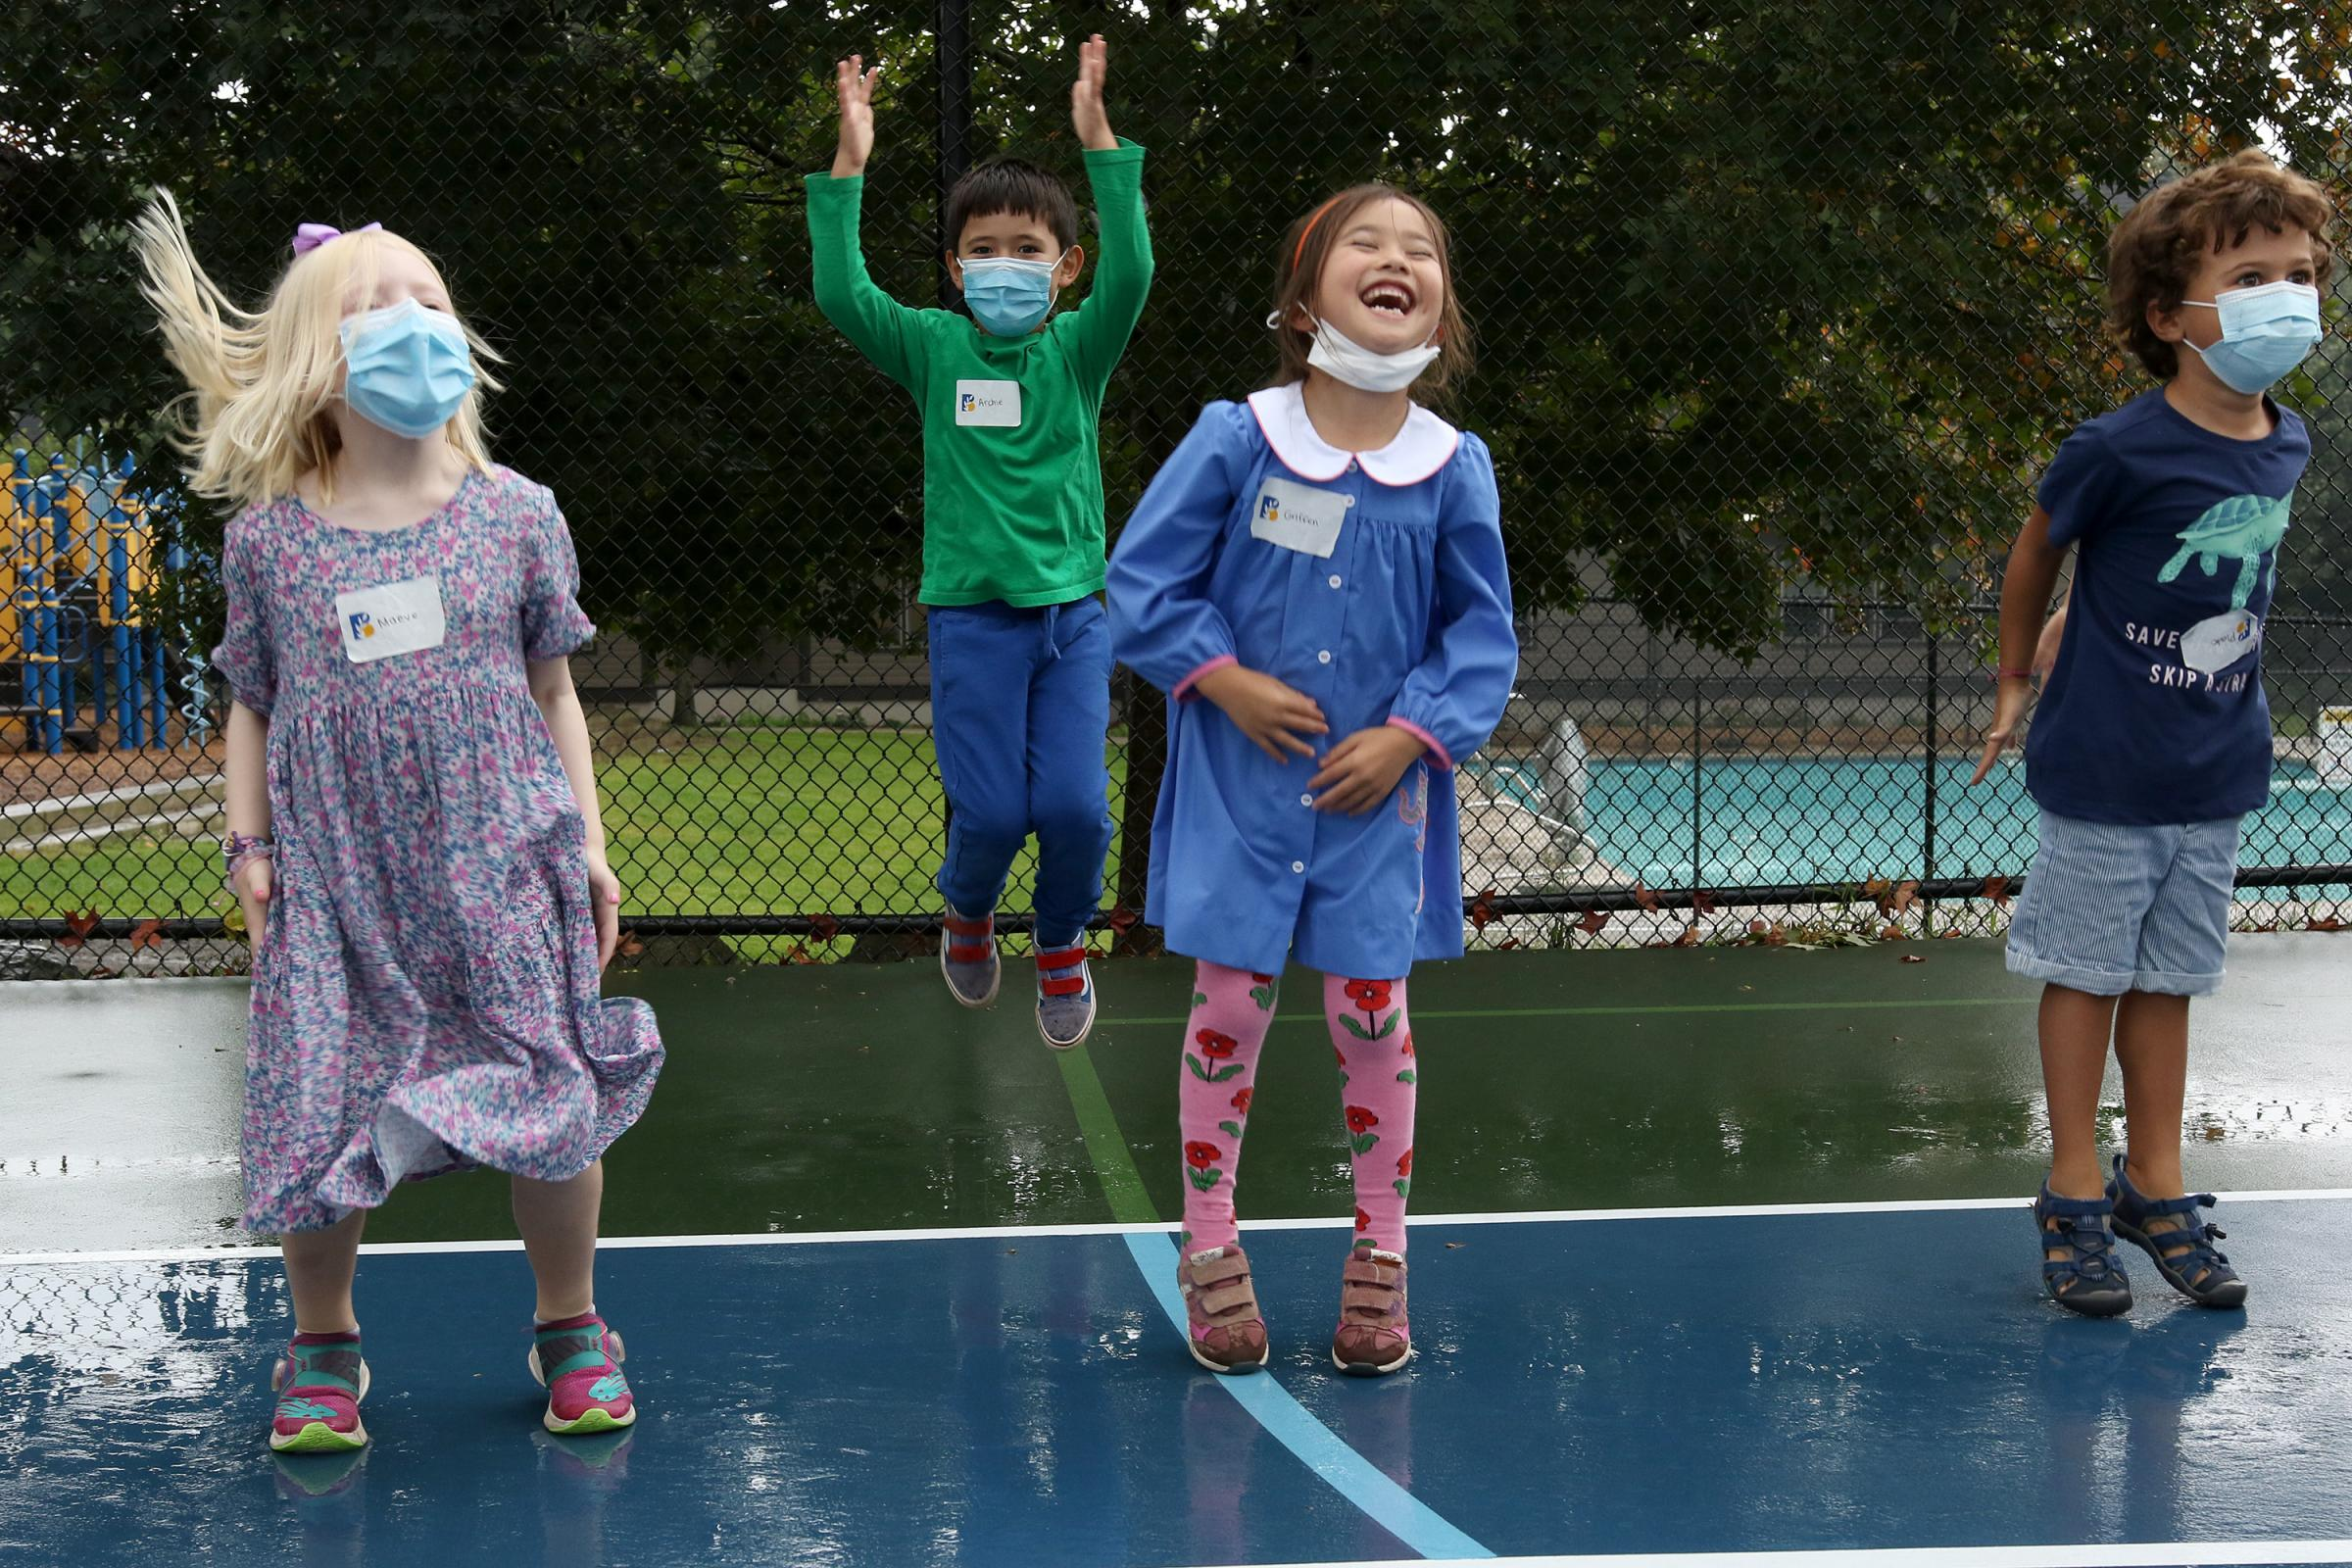 Four pre-k students laugh and jump together